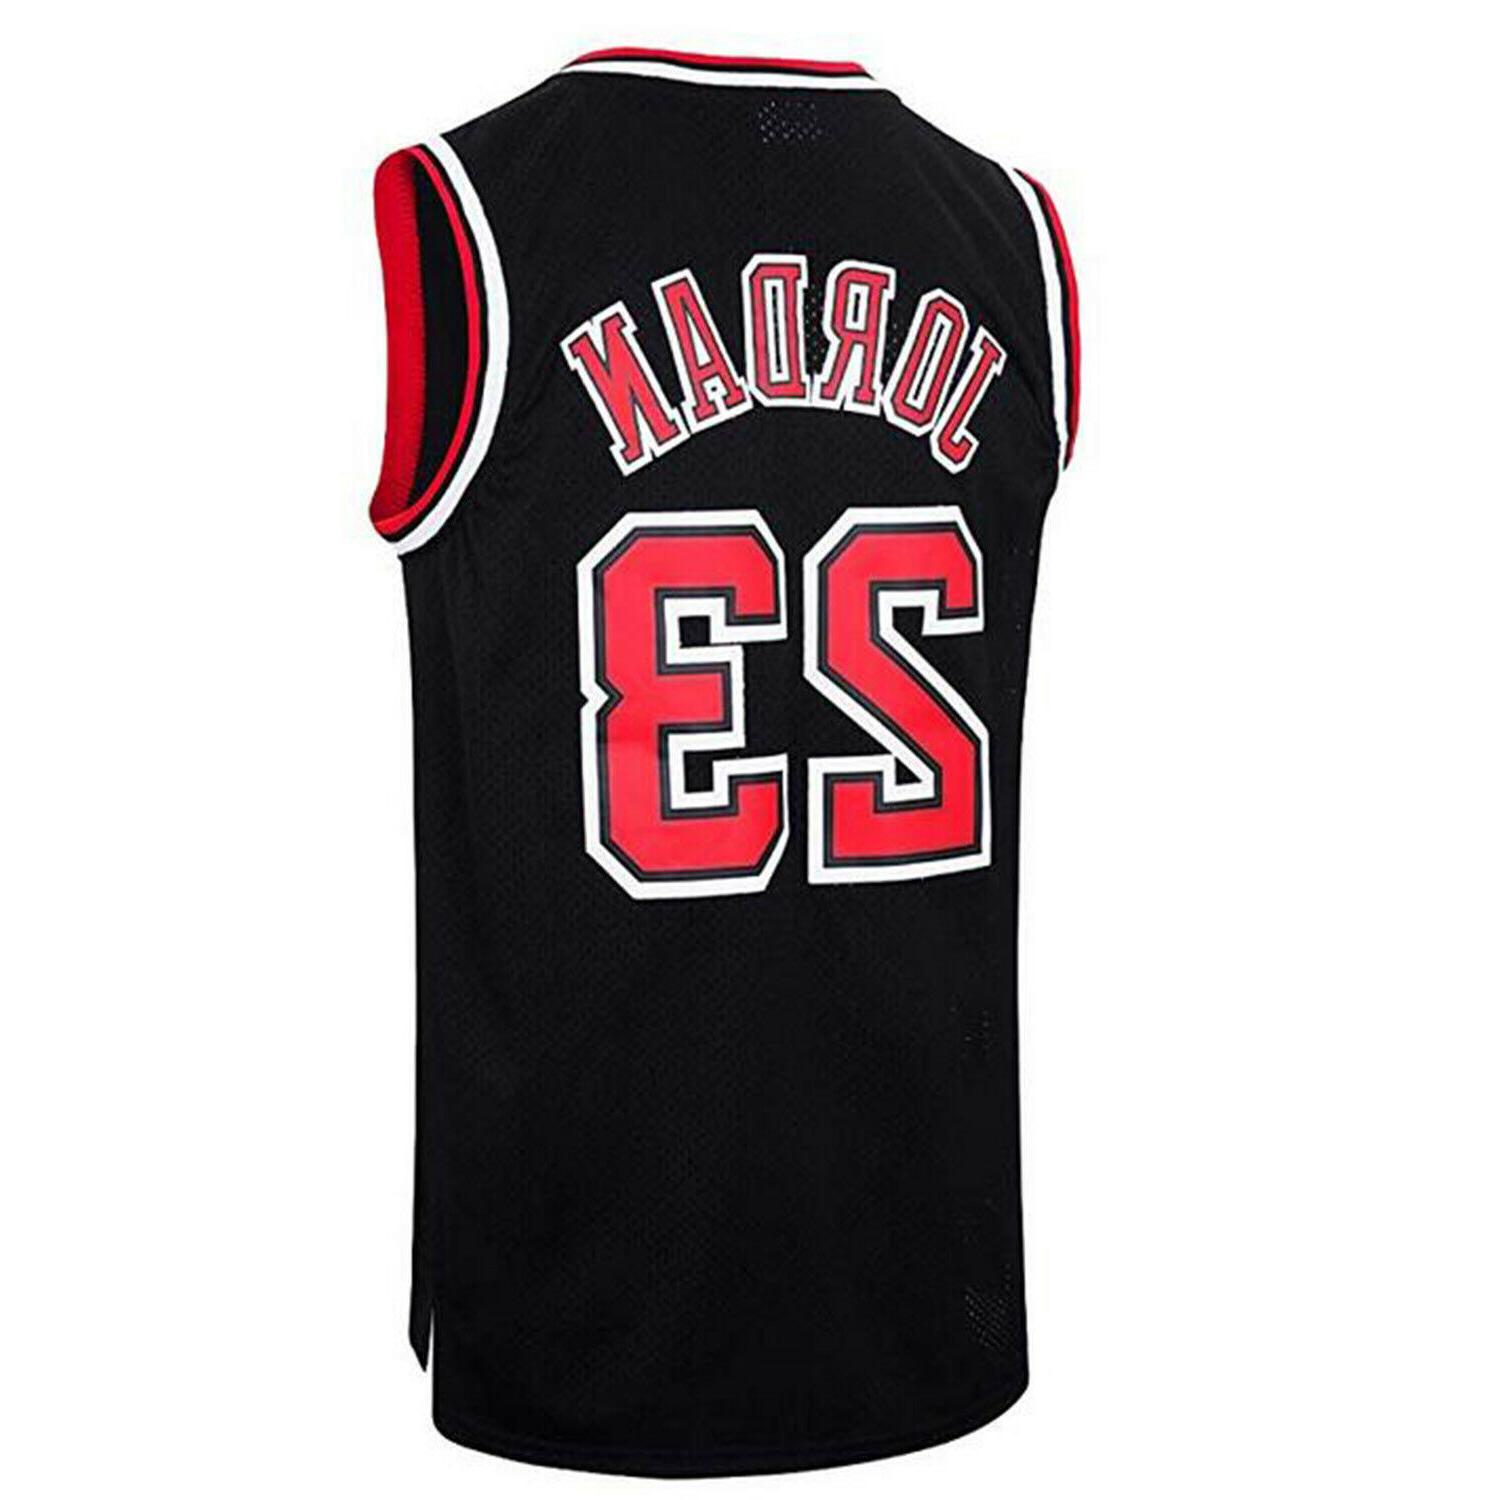 YOUTH KIDS Swingman Jordan 23 Basketball Jersey